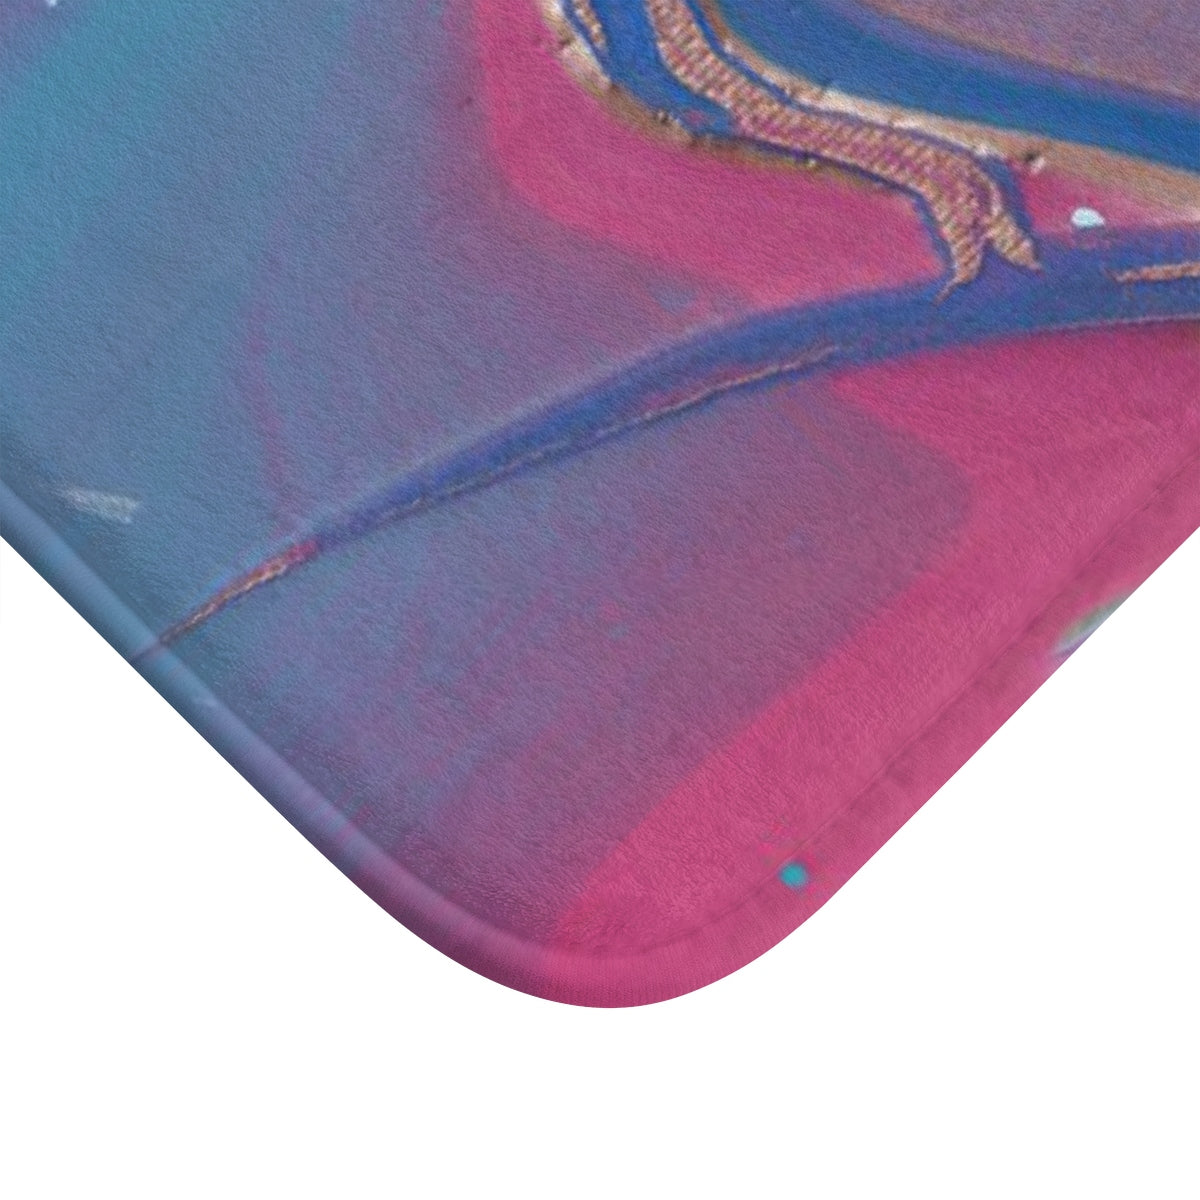 "UNDER WATER LIFE 2 Bath Mat   SMALL 24"" x 17"""